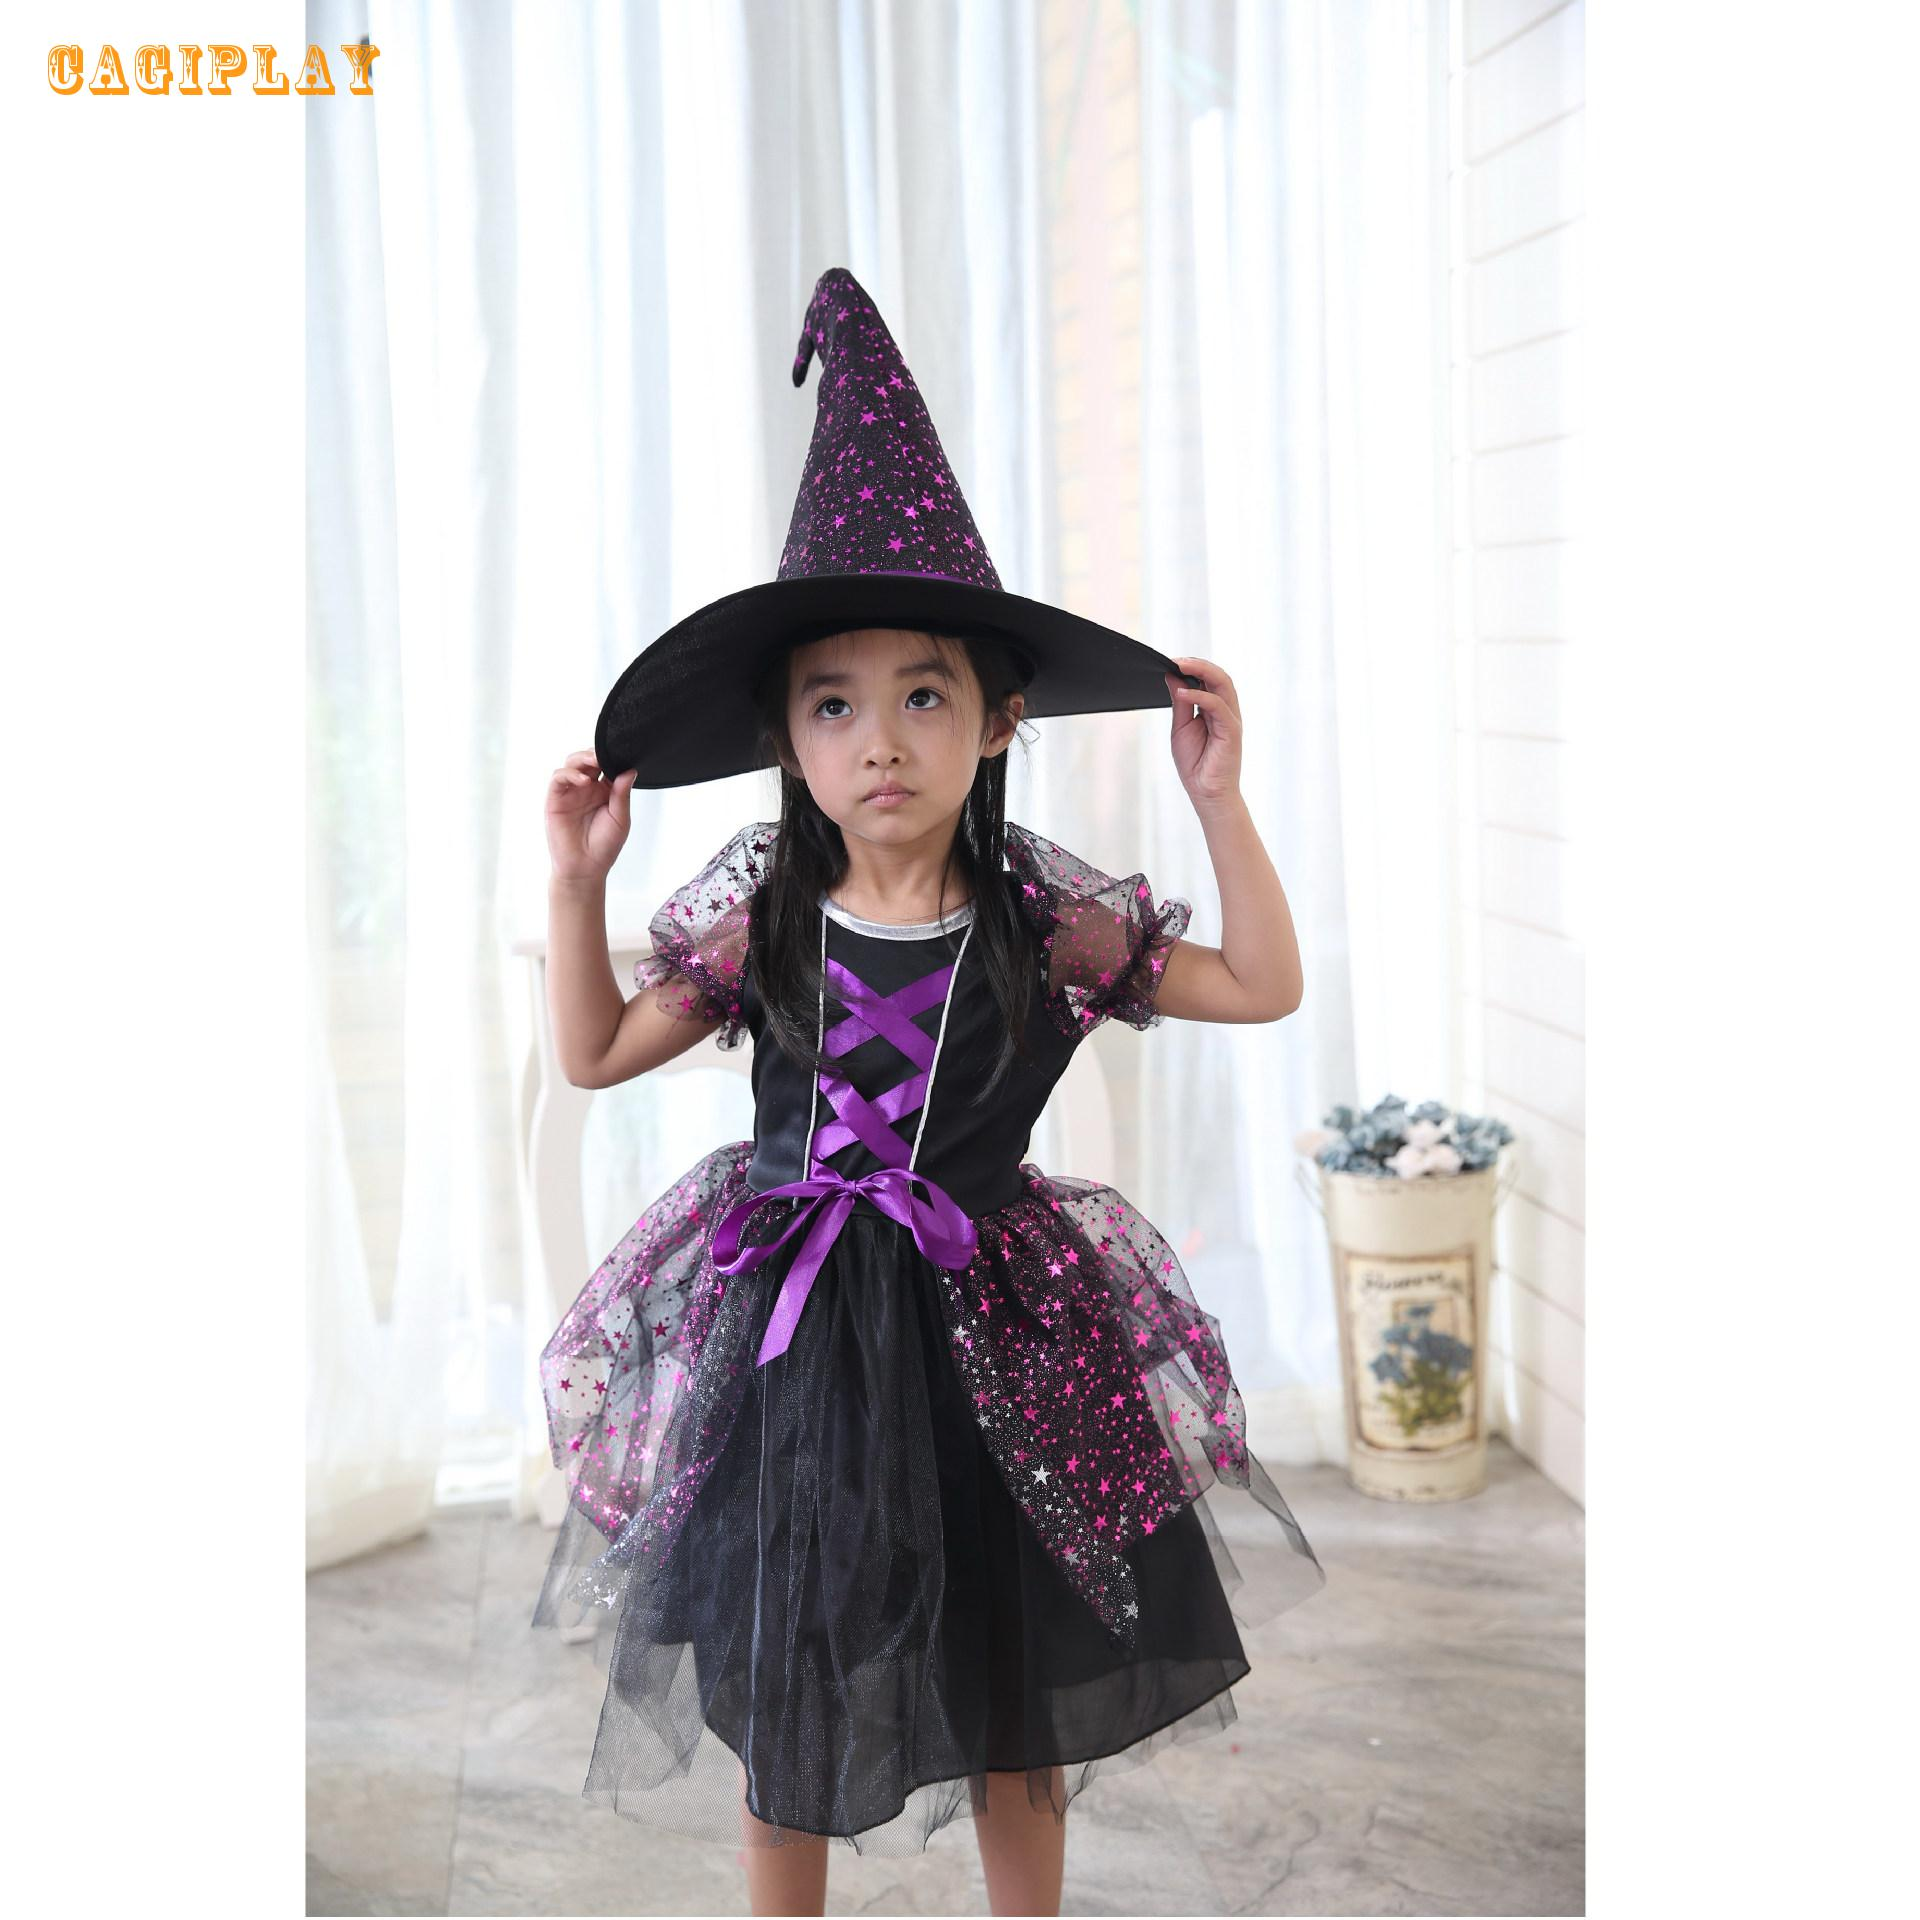 2018 New Deluxe  Princess Purple Witch Dress Girl Carnival Cosplay Clothing Halloween Costume For Kids Age 3-10 Years